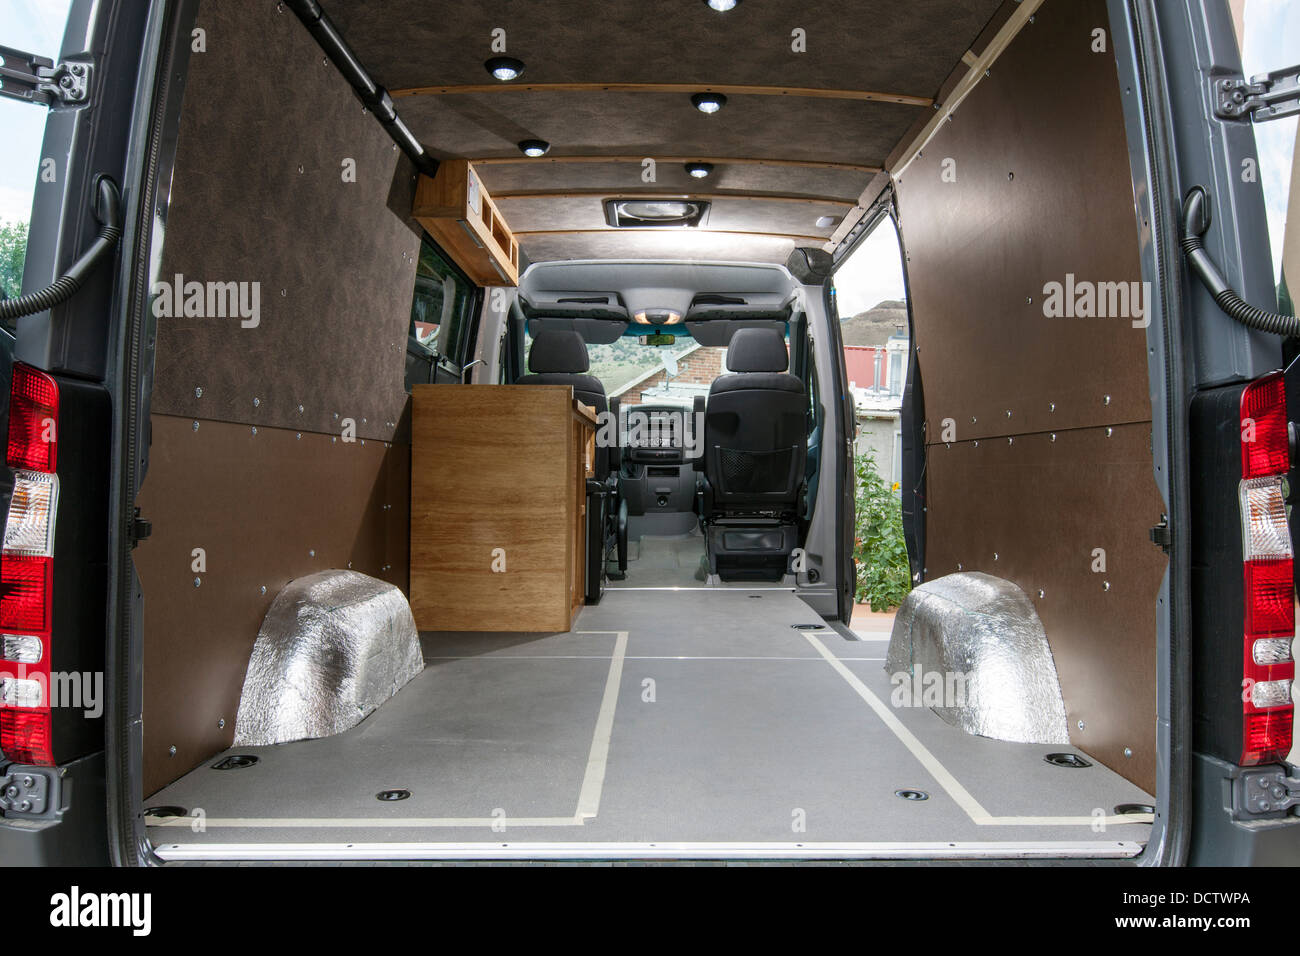 Custom camper Mercedes-Benz Sprinter Cargo Van 2500 - Stock Image